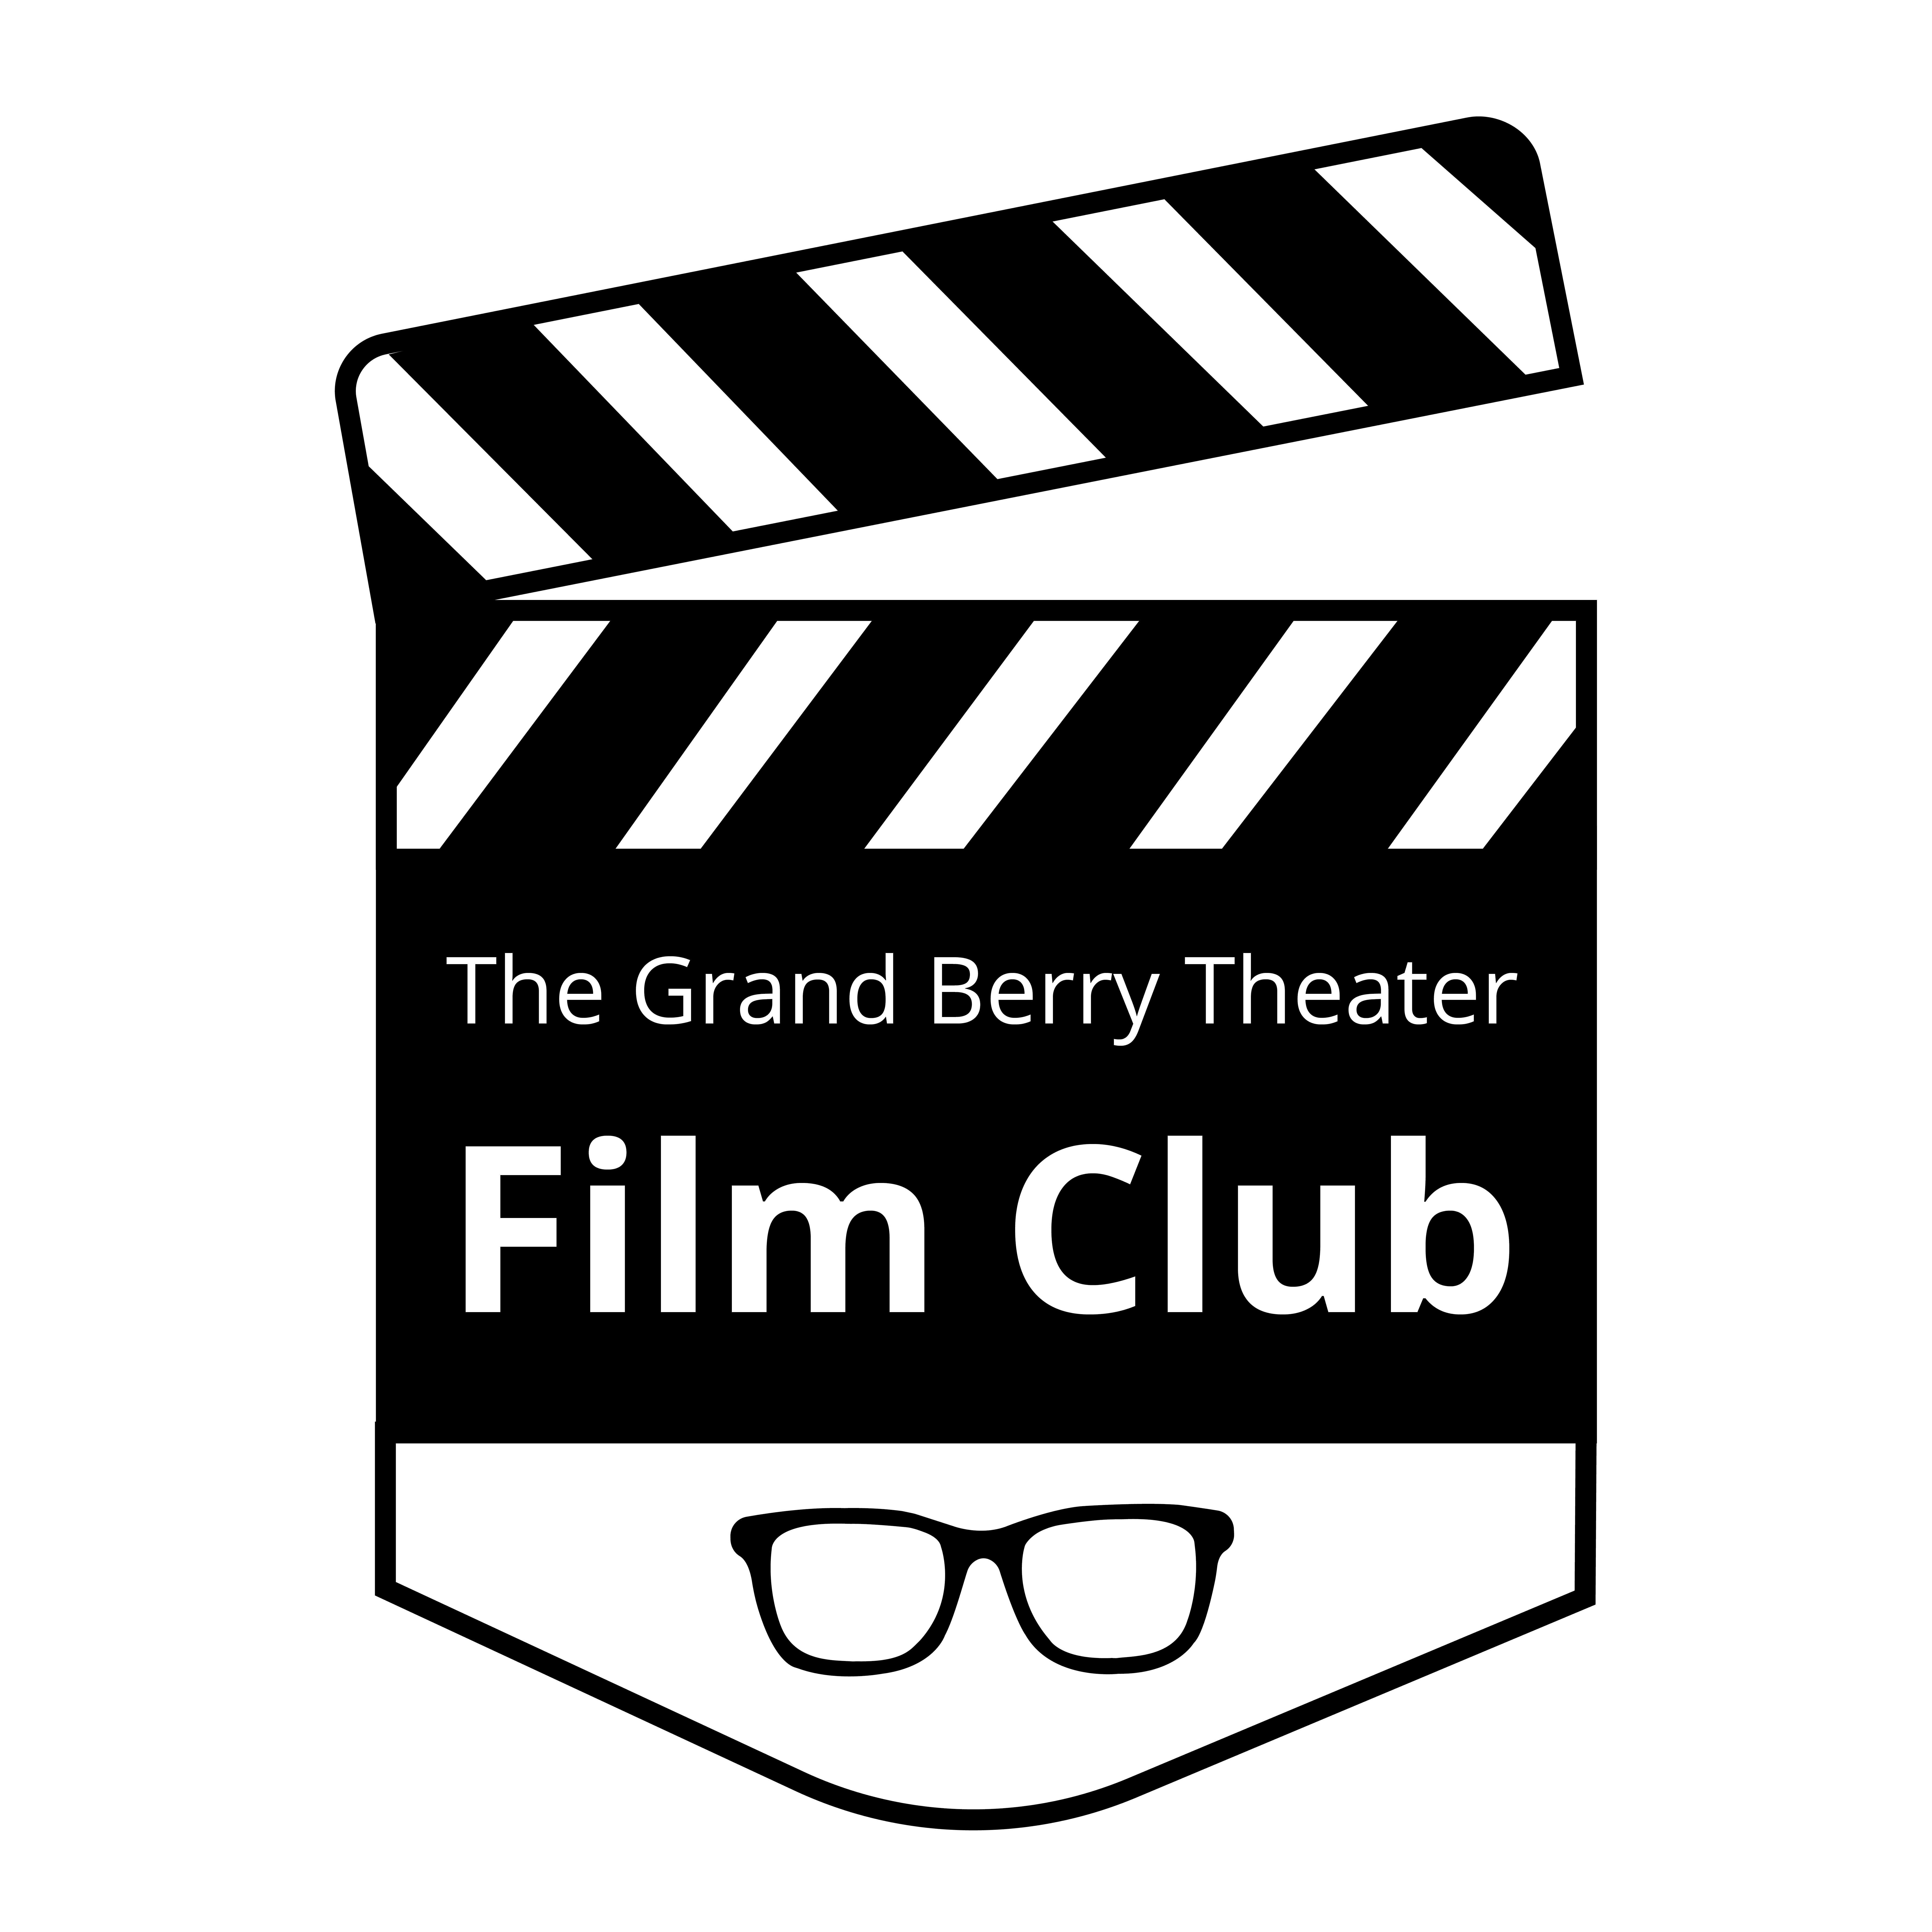 The Grand Berry Theater Film Club